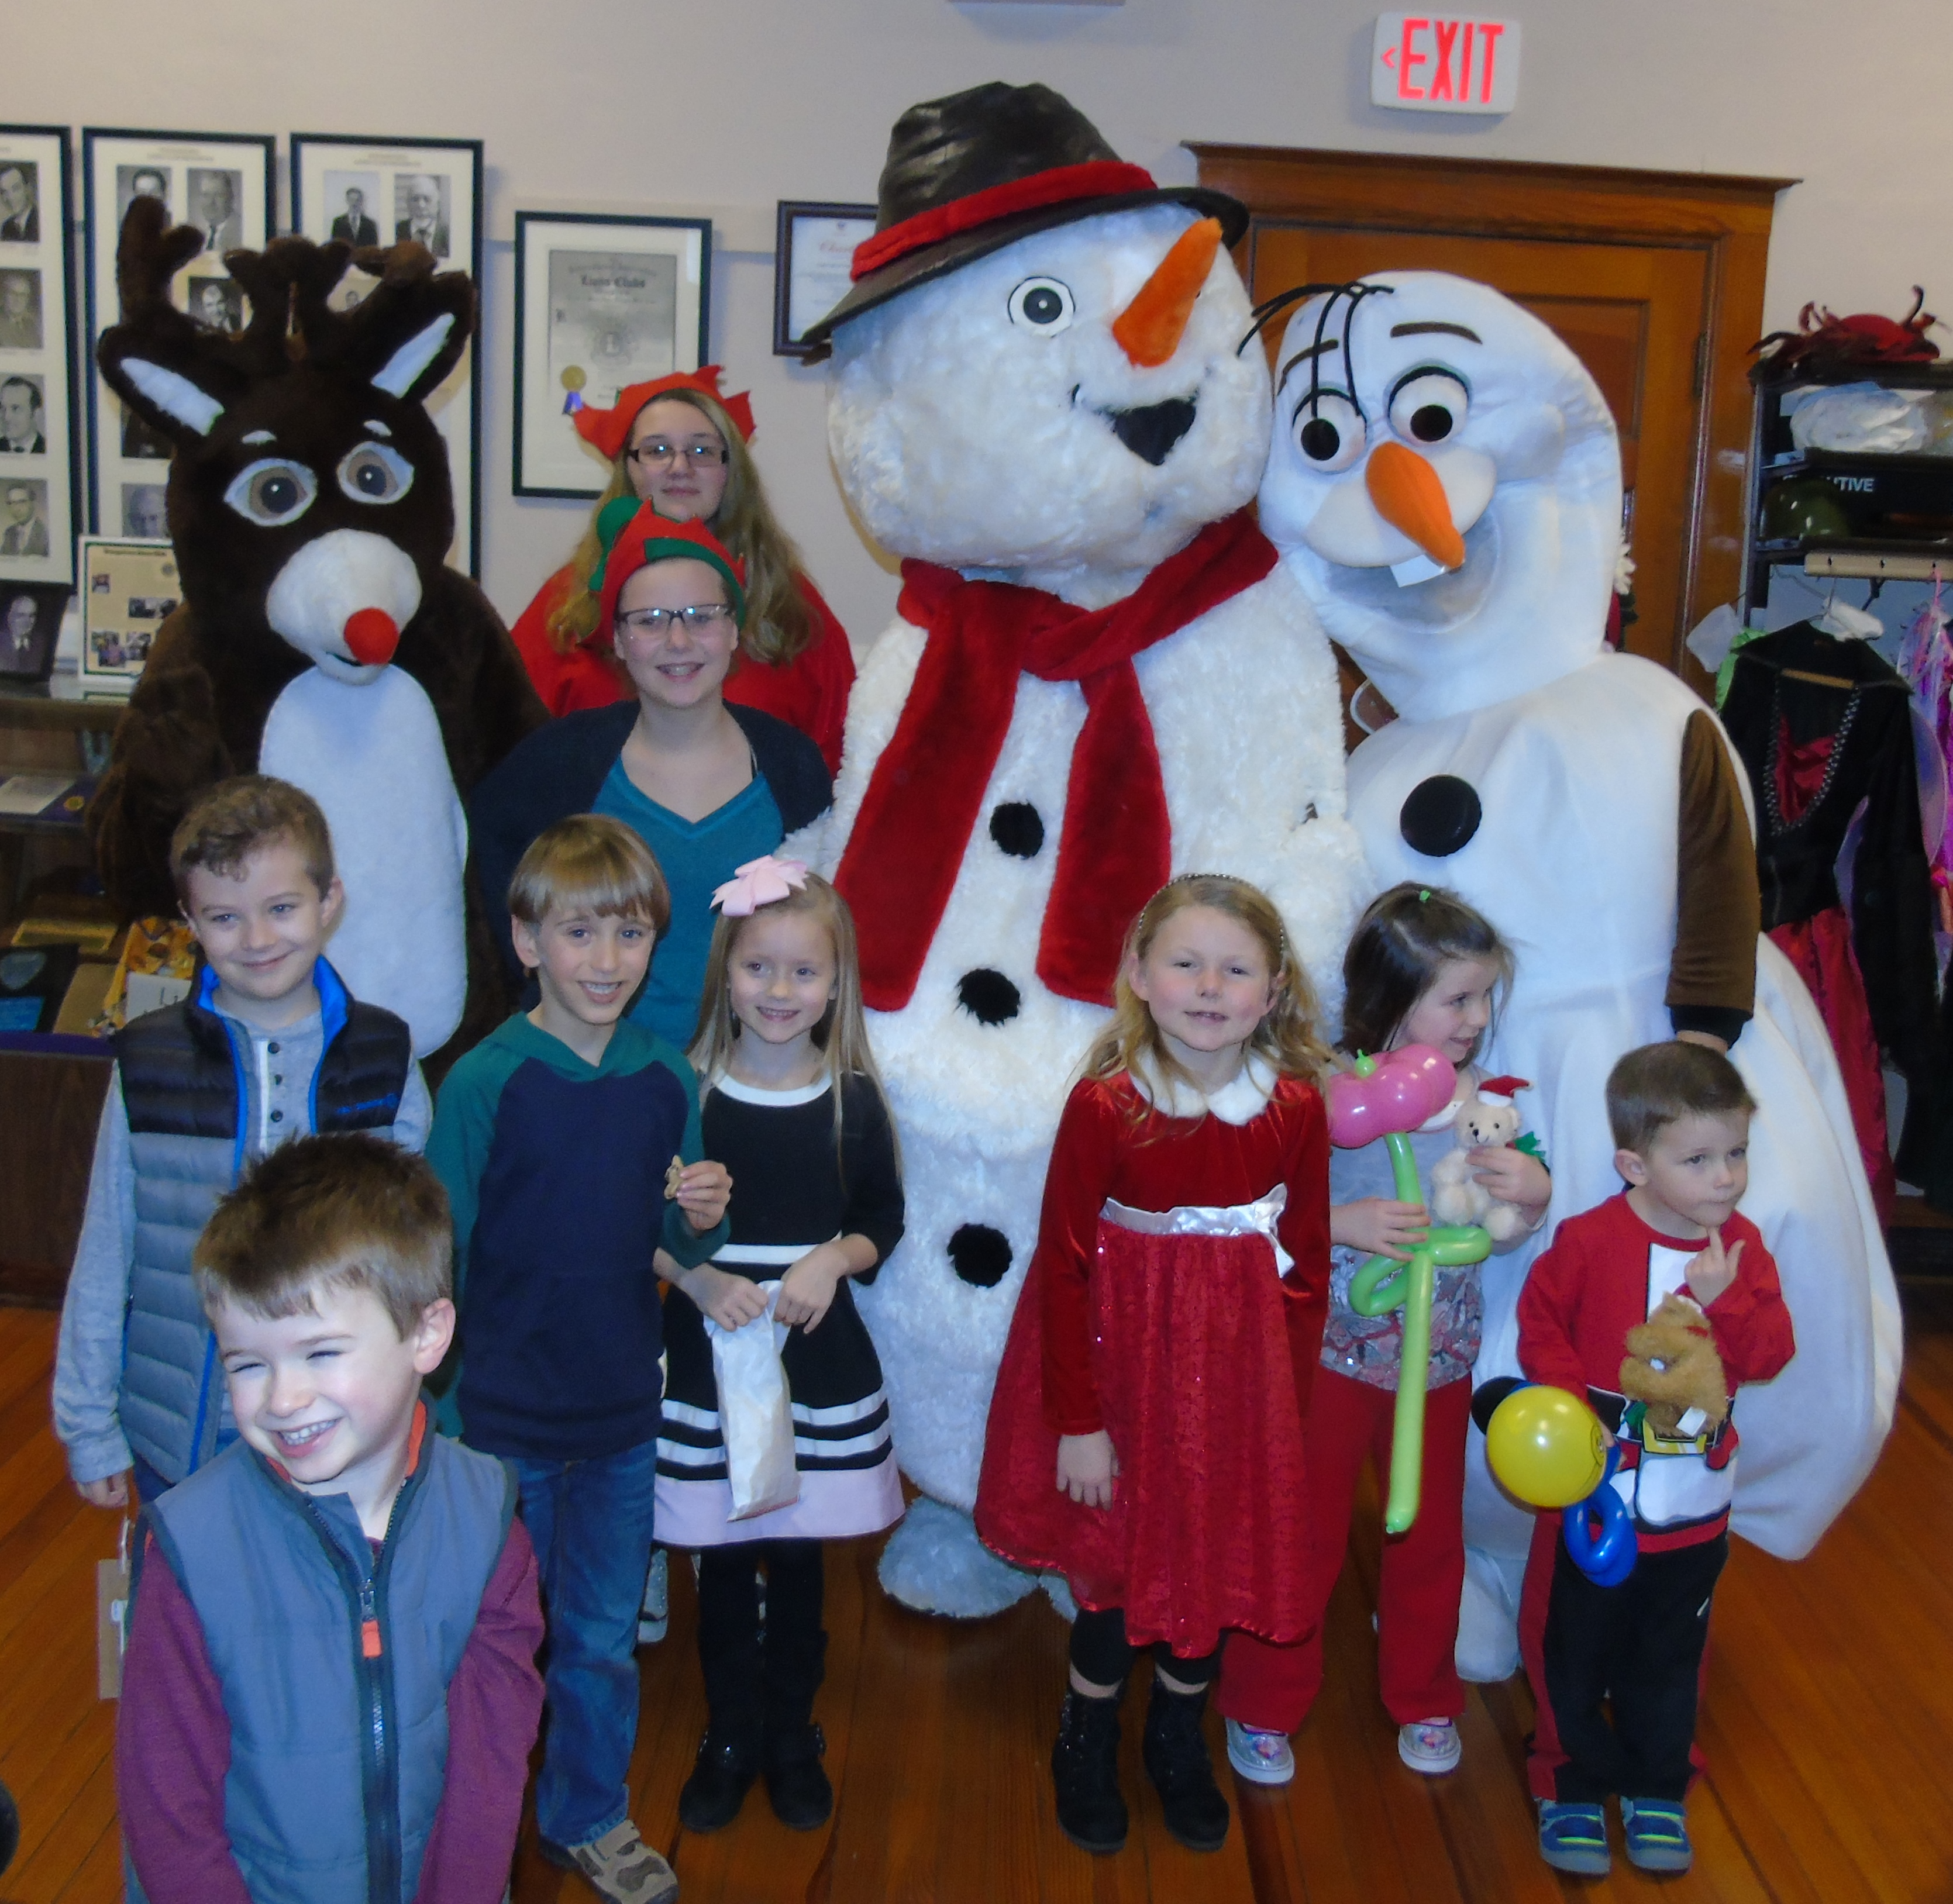 A children's party will be held as part of Youngstown's Christmas in the Village on Dec. 10. (Provided by the Youngstown Recreation Department)